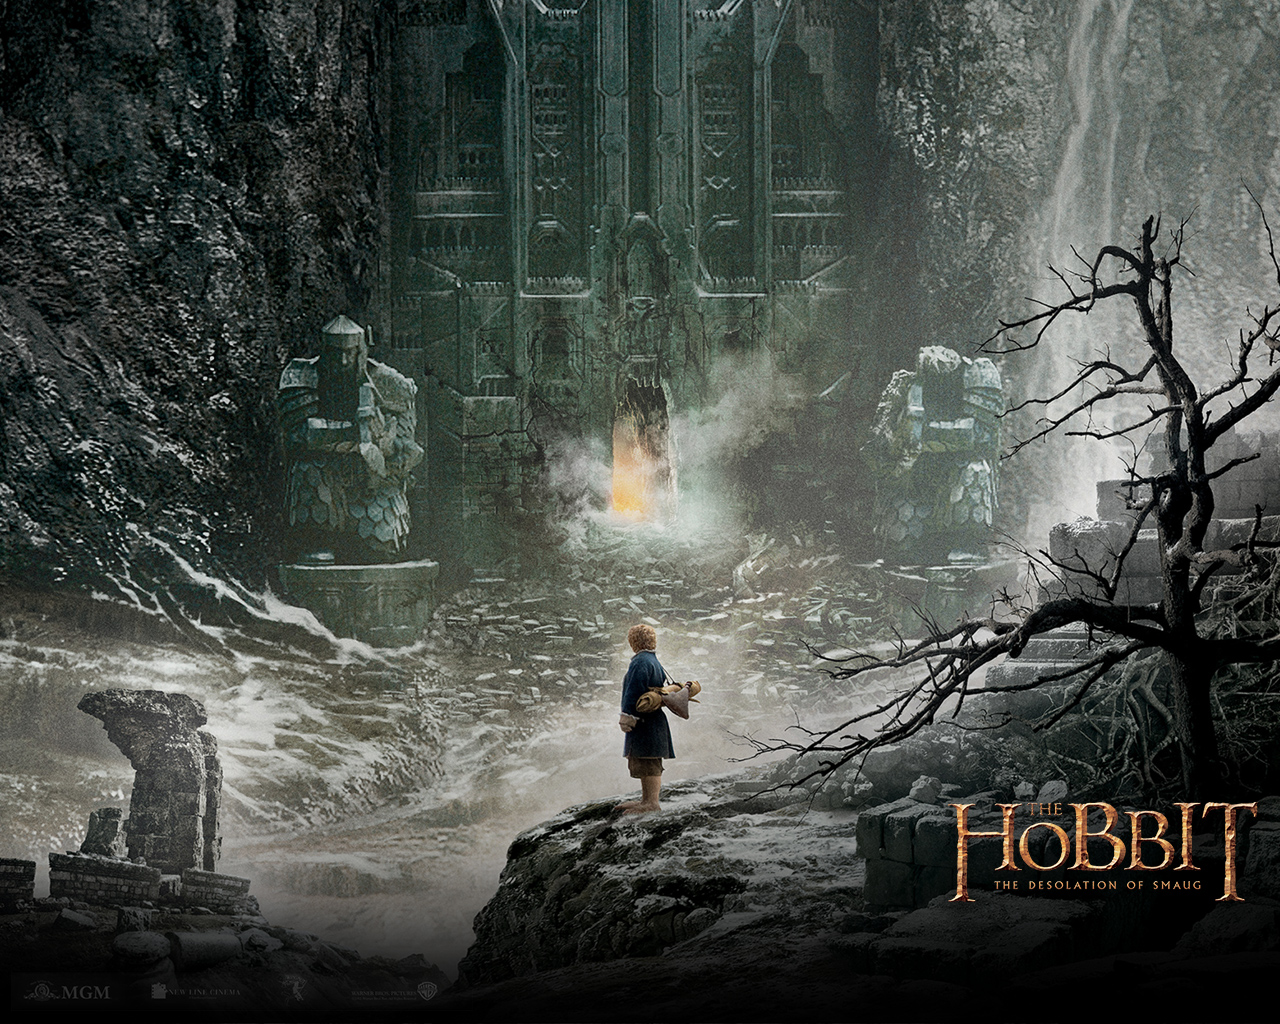 TheHobbit_1280_1sheet.jpg